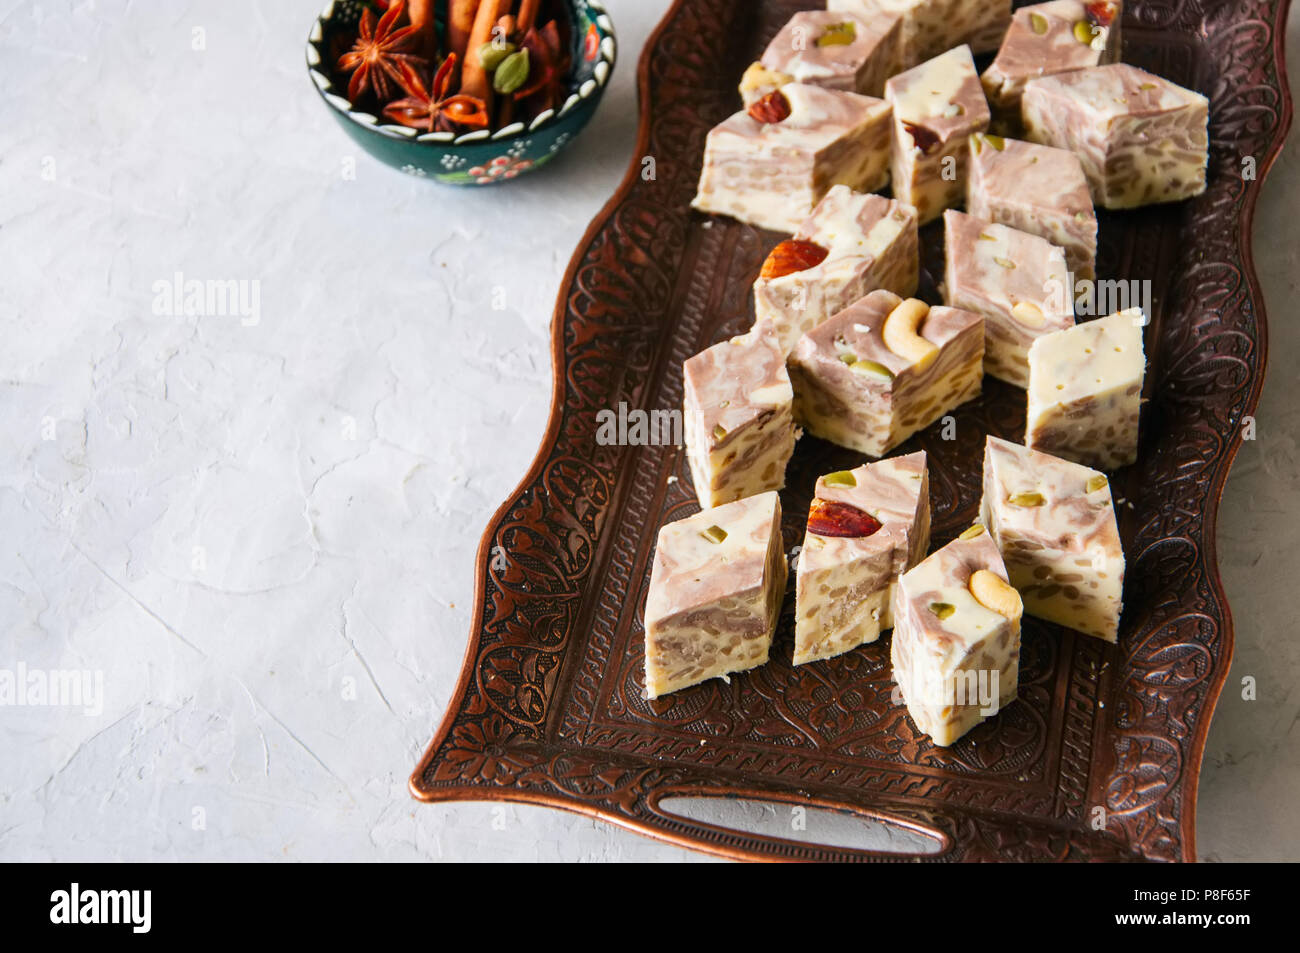 Traditional eastern dessert - halva with nuts and seeds served on a vintage plate. - Stock Image